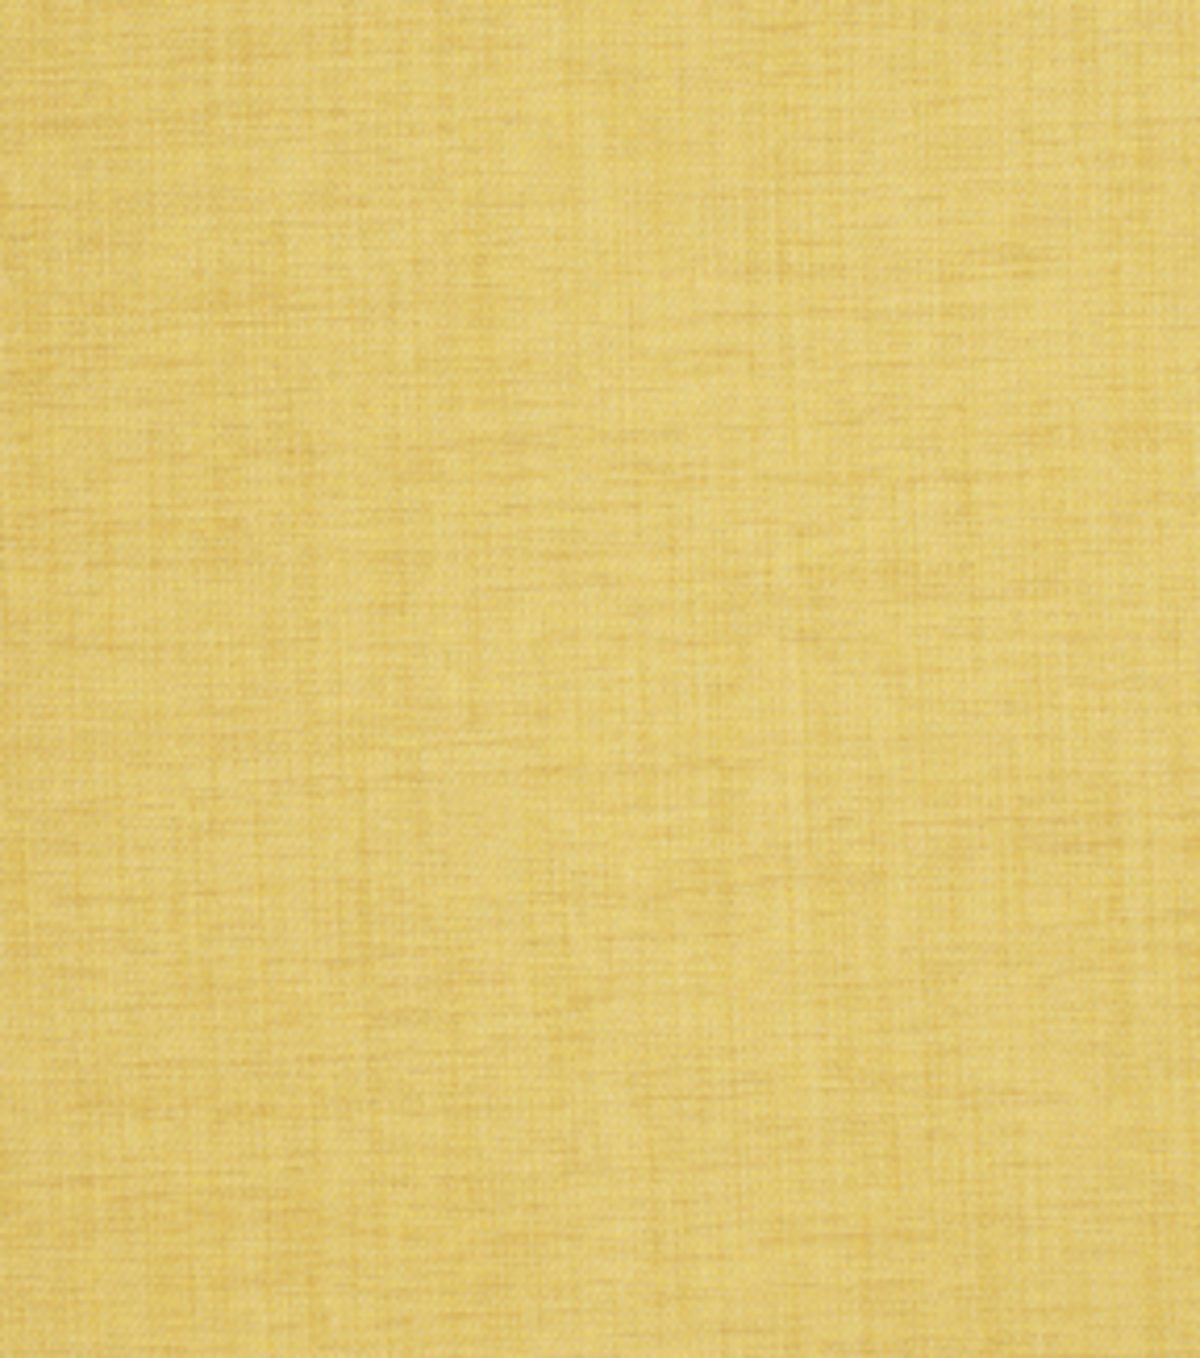 Home Decor 8\u0022x8\u0022 Fabric Swatch-Eaton Square Ring Toss Yellow